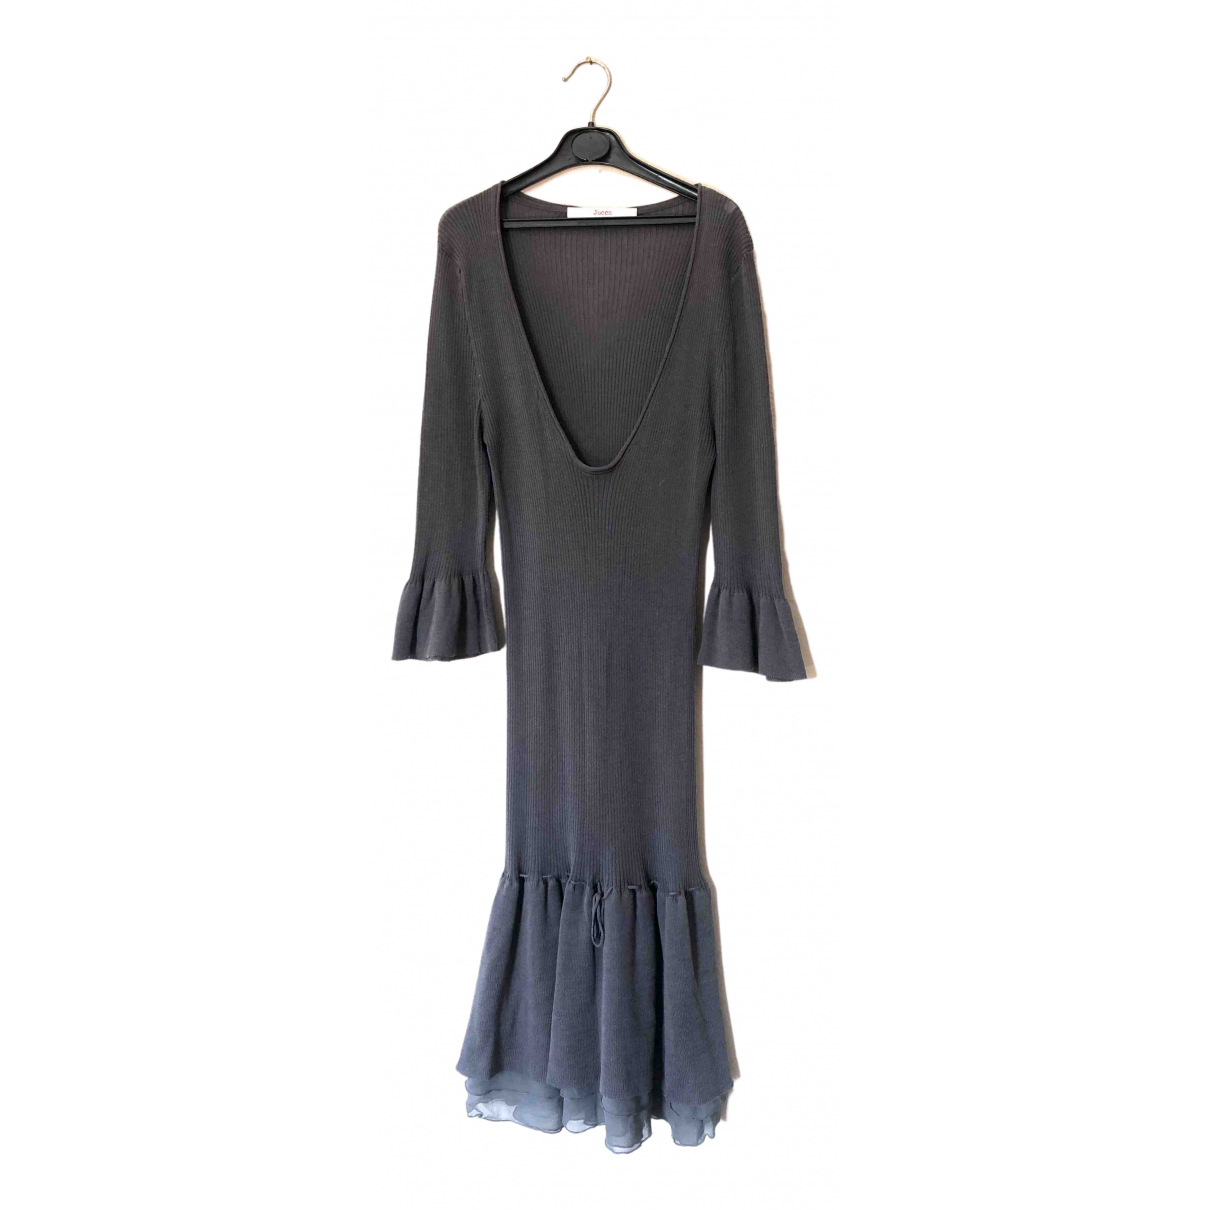 Jucca \N Grey Cotton dress for Women One Size IT